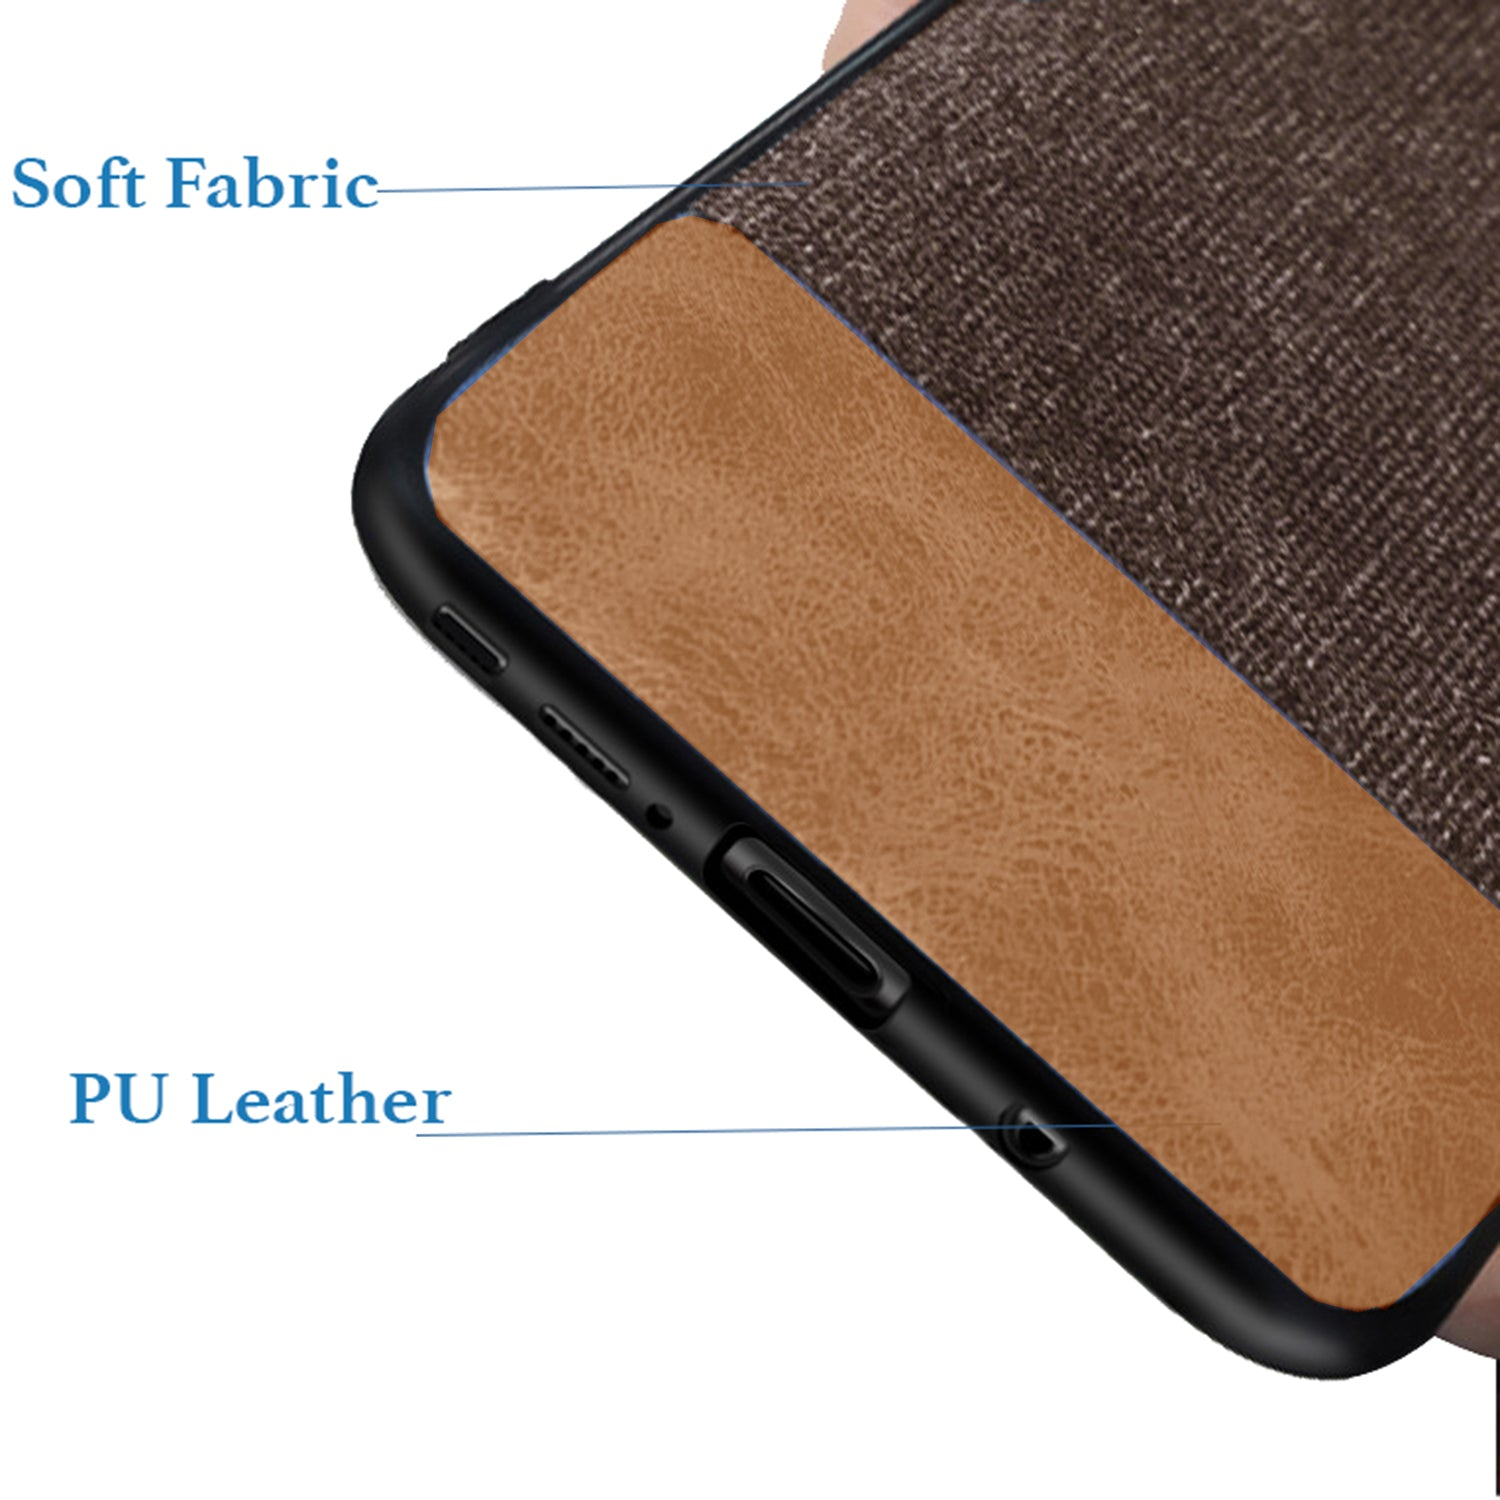 Fabric + Leather Hybrid Protective Case Cover for Samsung Galaxy Note 9 - Brown - Mobizang